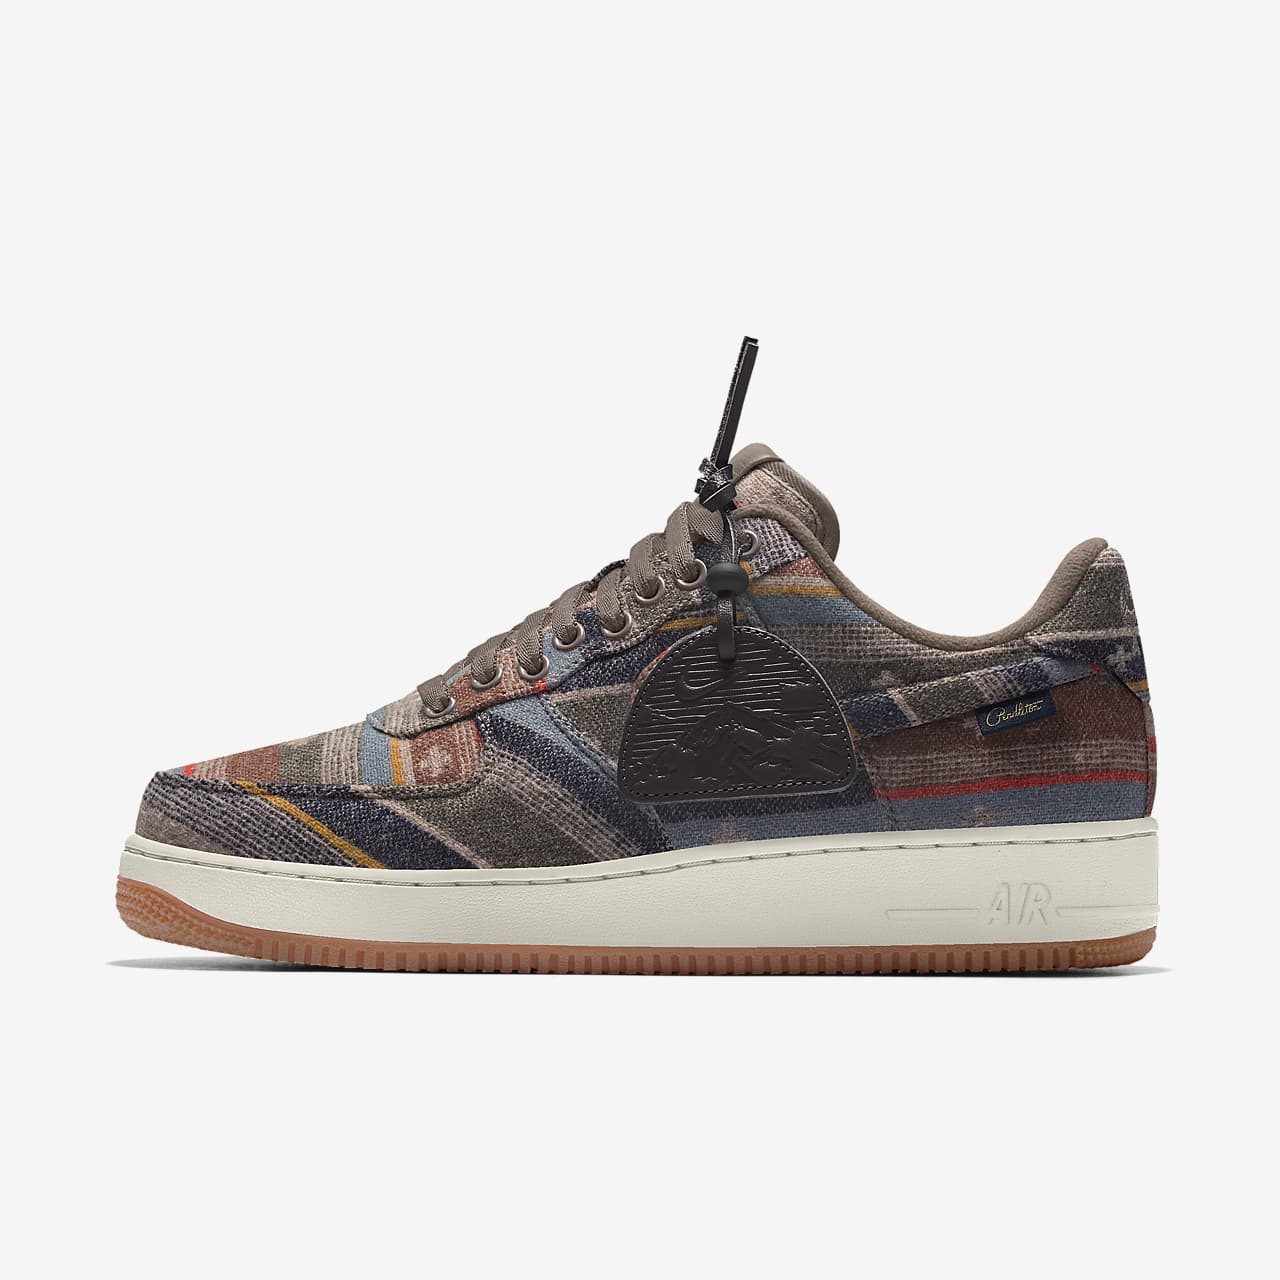 Air Force 1 Low Pendleton By You personalisierbarer Schuh